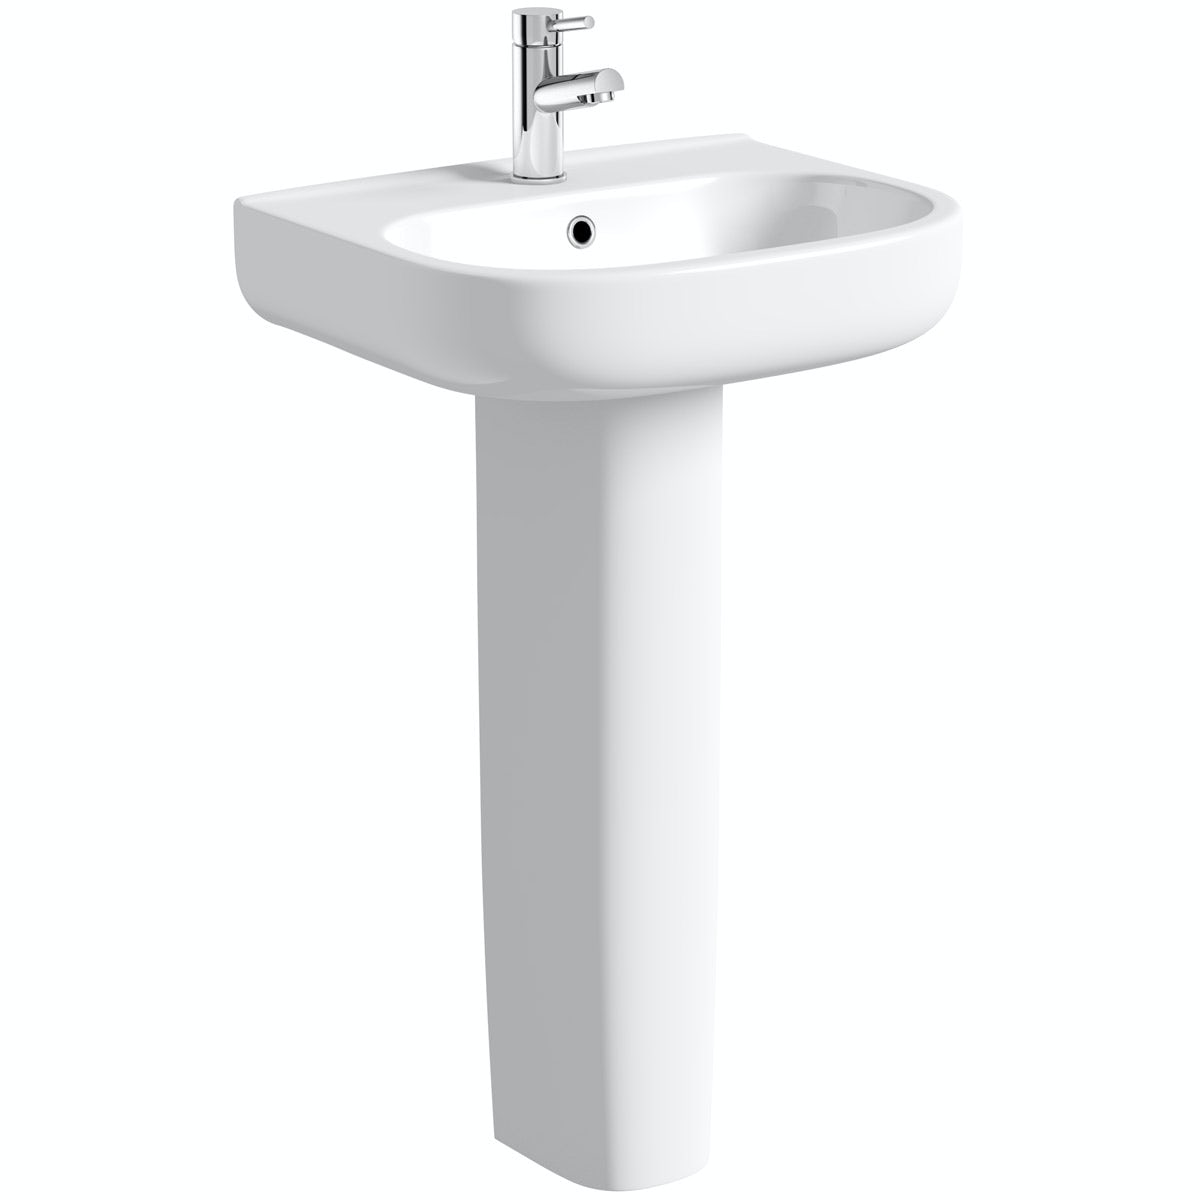 Orchard Lune full pedestal basin 550mm